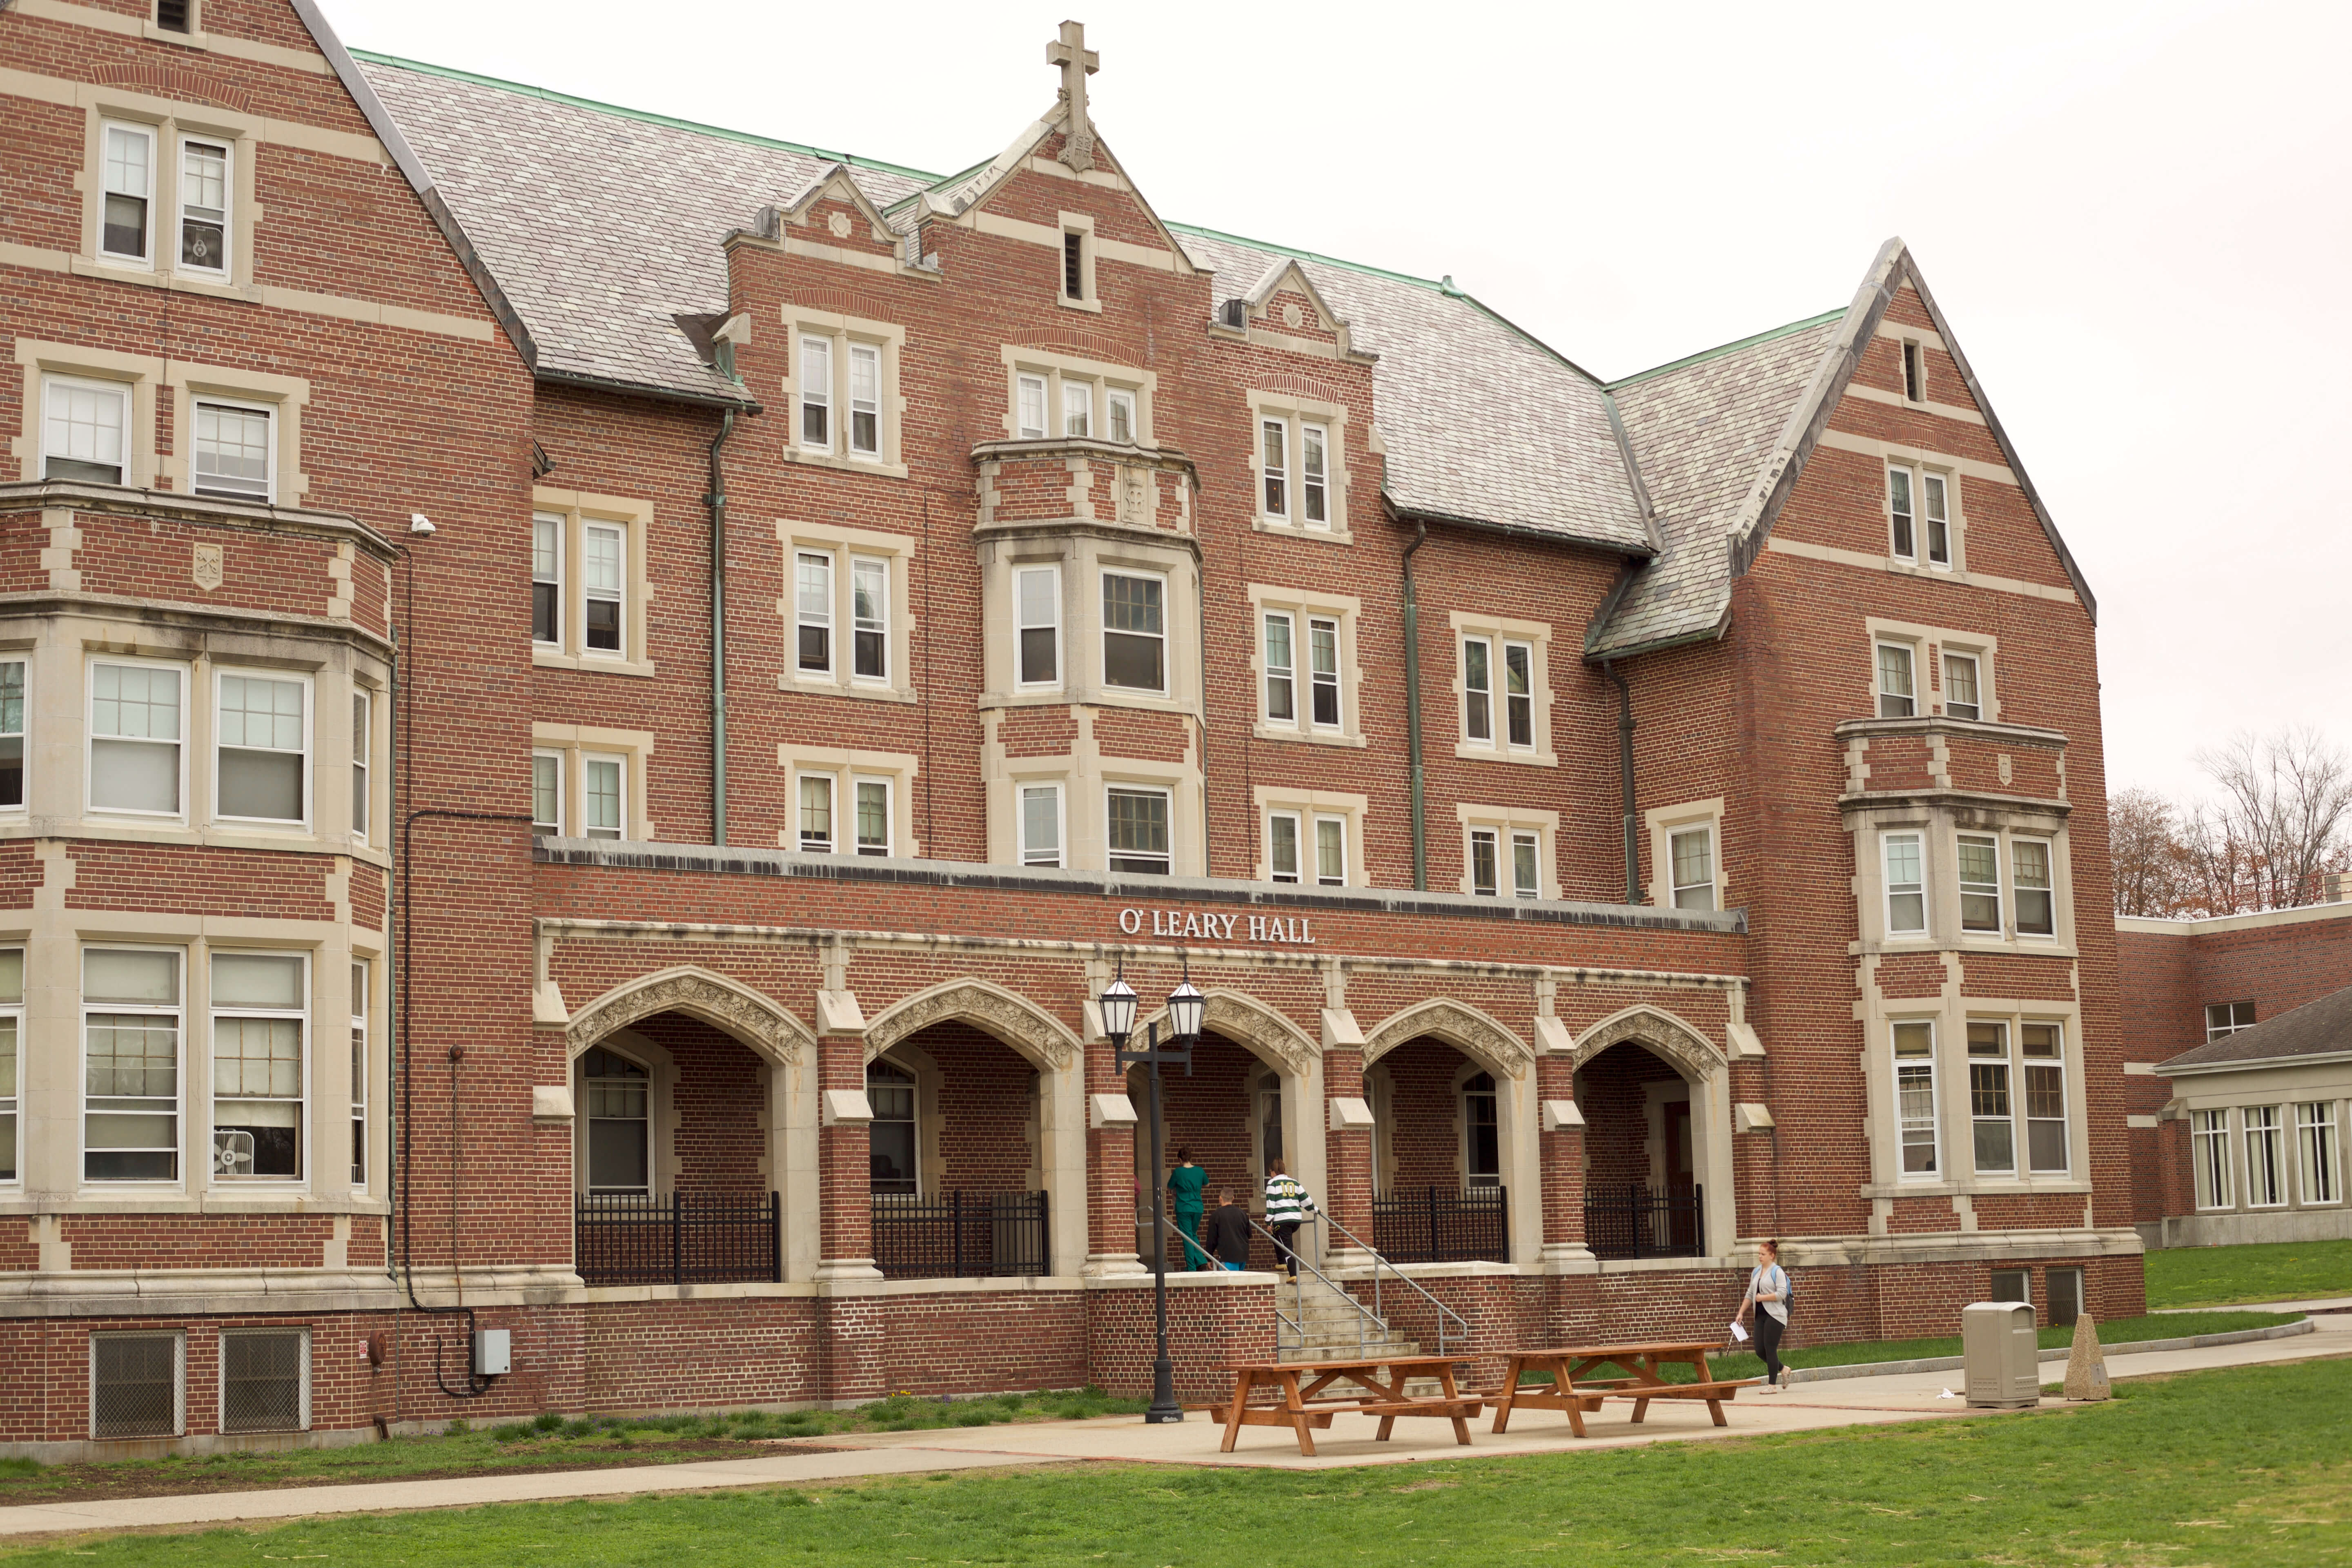 Photo of O'Leary Hall